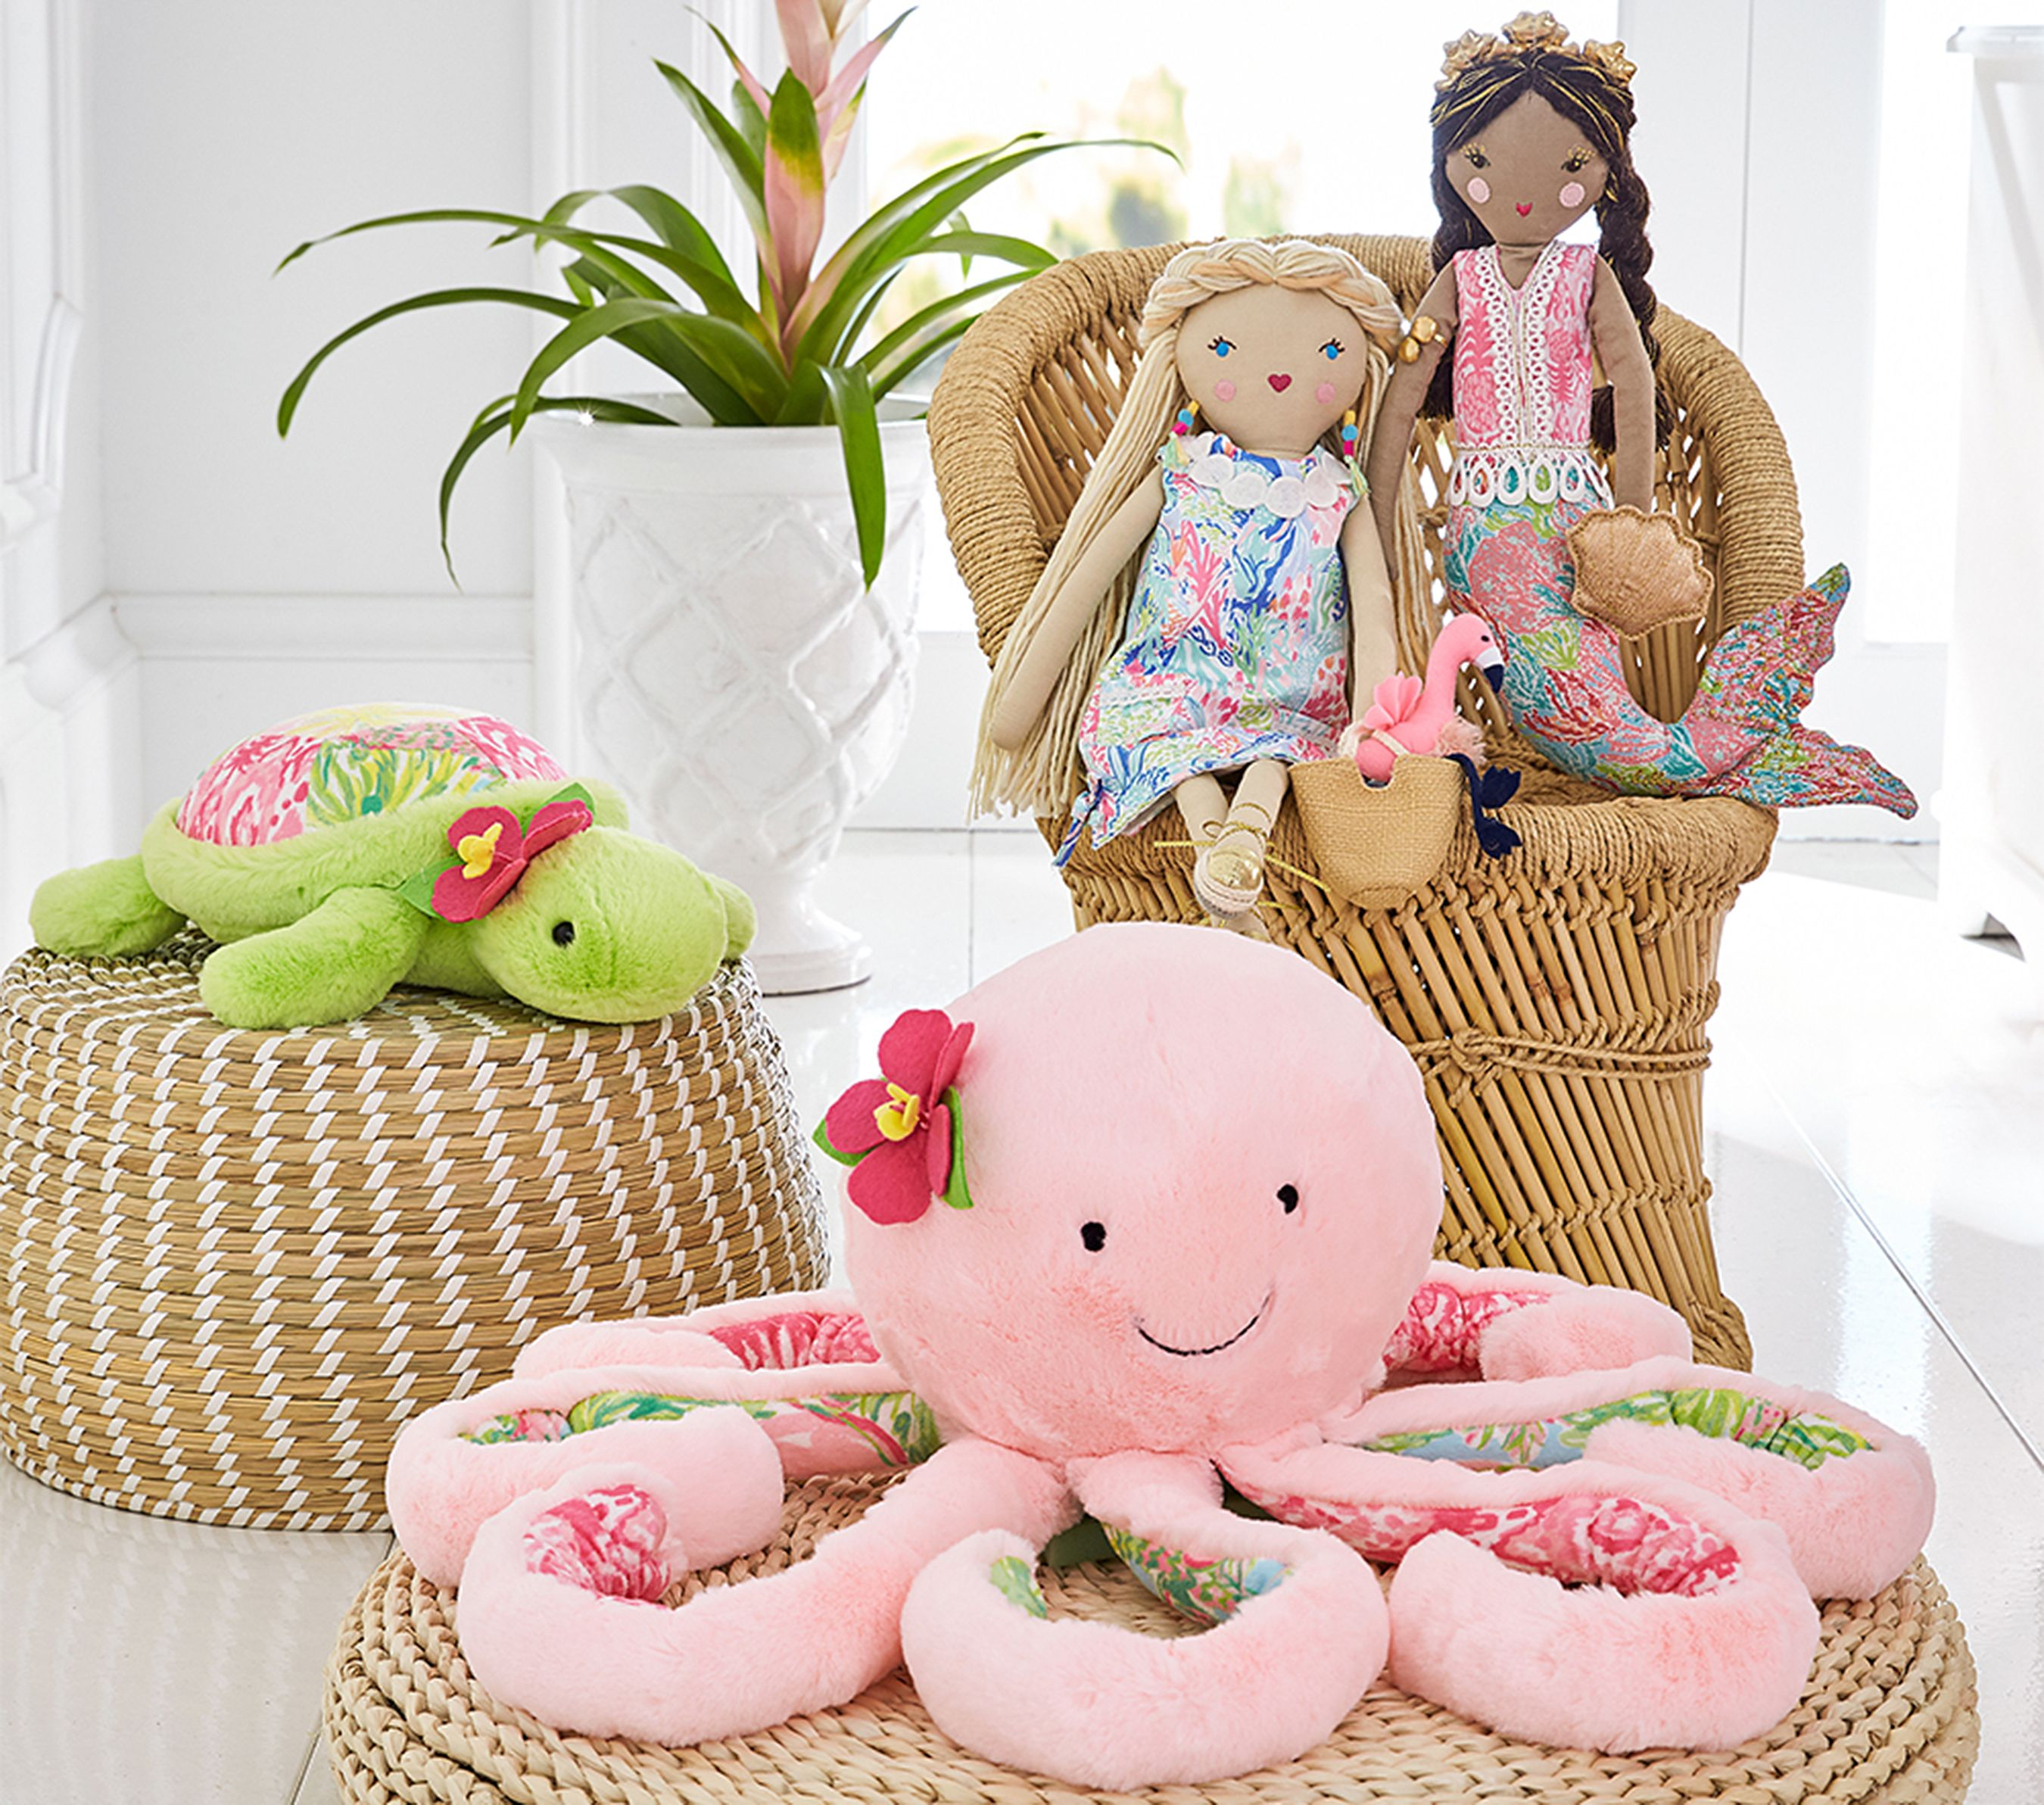 Lilly Pulitzer Exclusively For Pottery Barn Pottery Kids: Lilly Pulitzer And Pottery Barn's New Collection Will Make